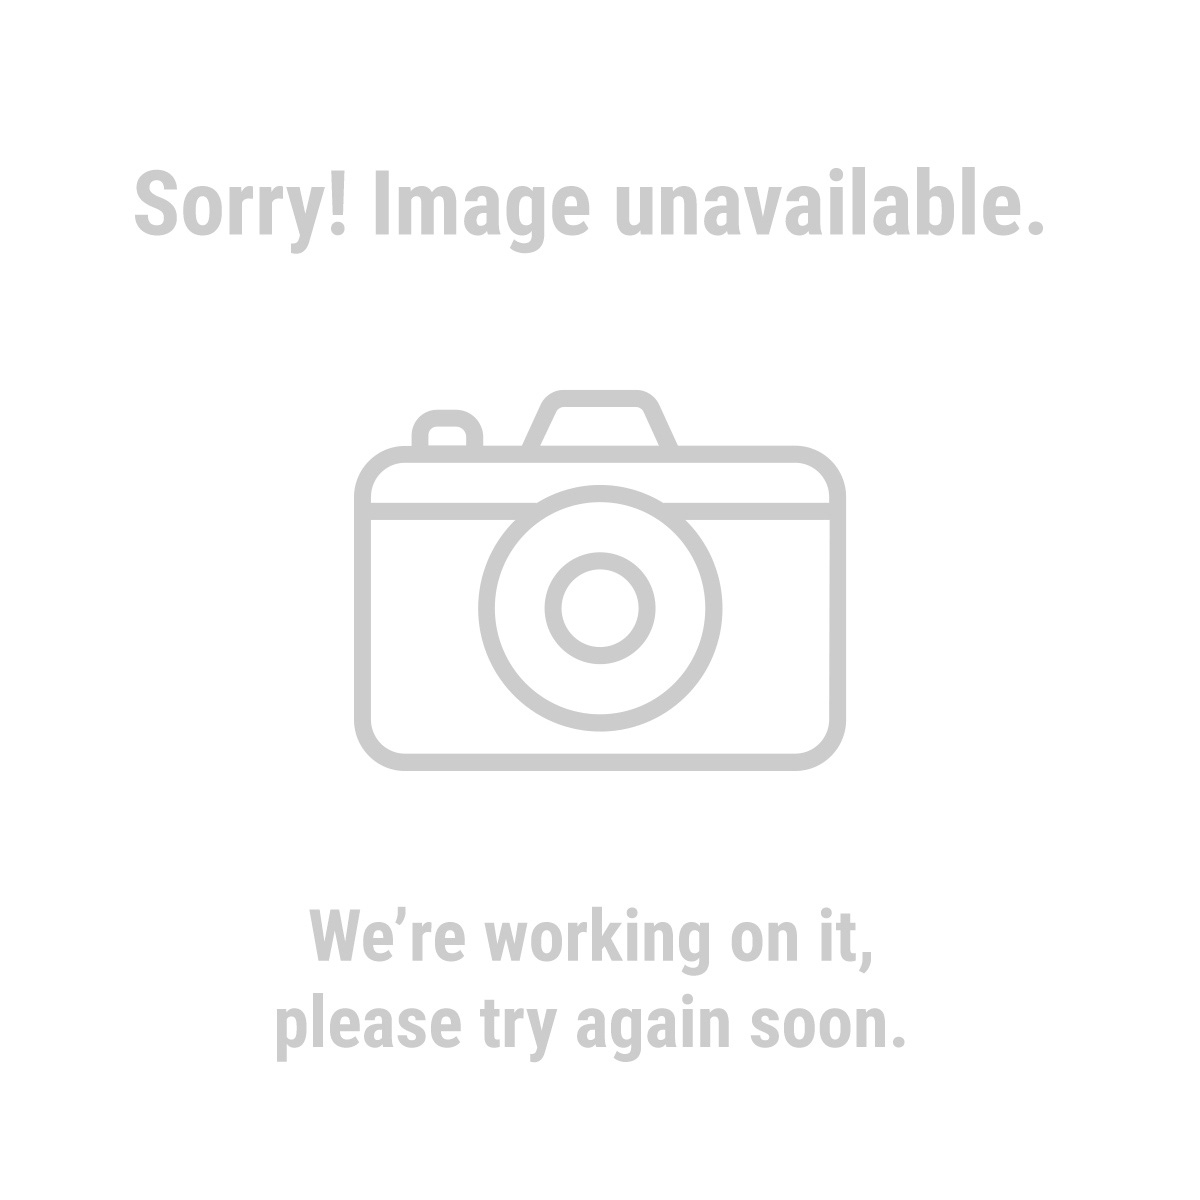 Pittsburgh 91673 4 Piece Midget Locking Pliers Set